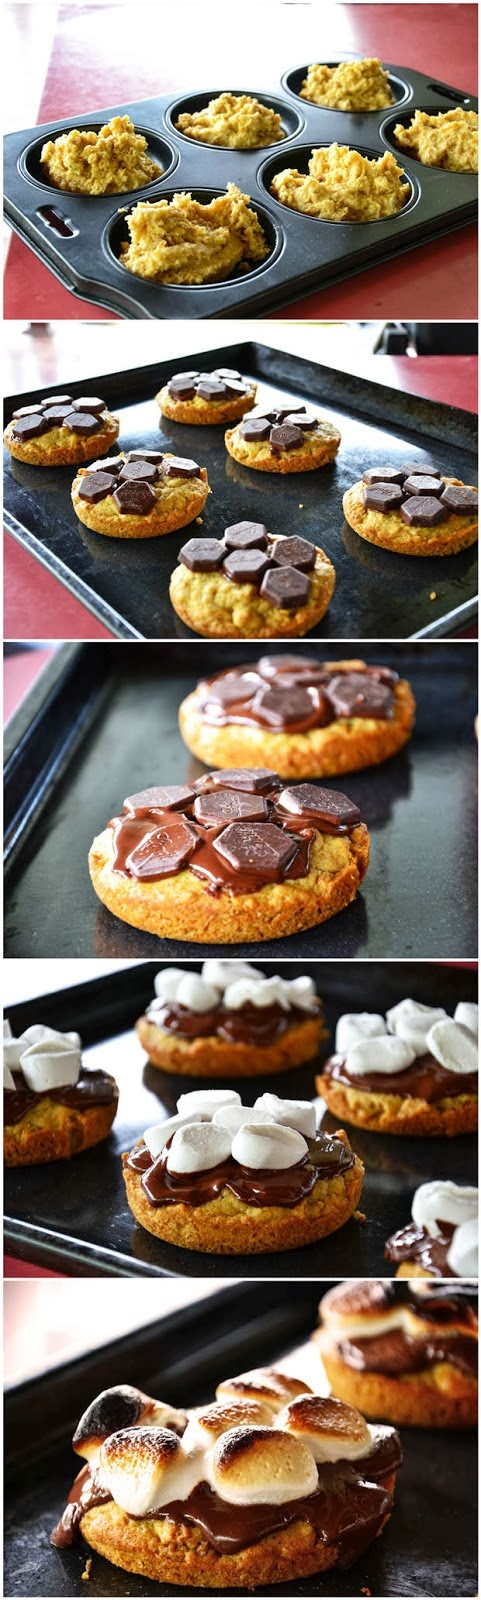 S'mores Deep Dish Cookie